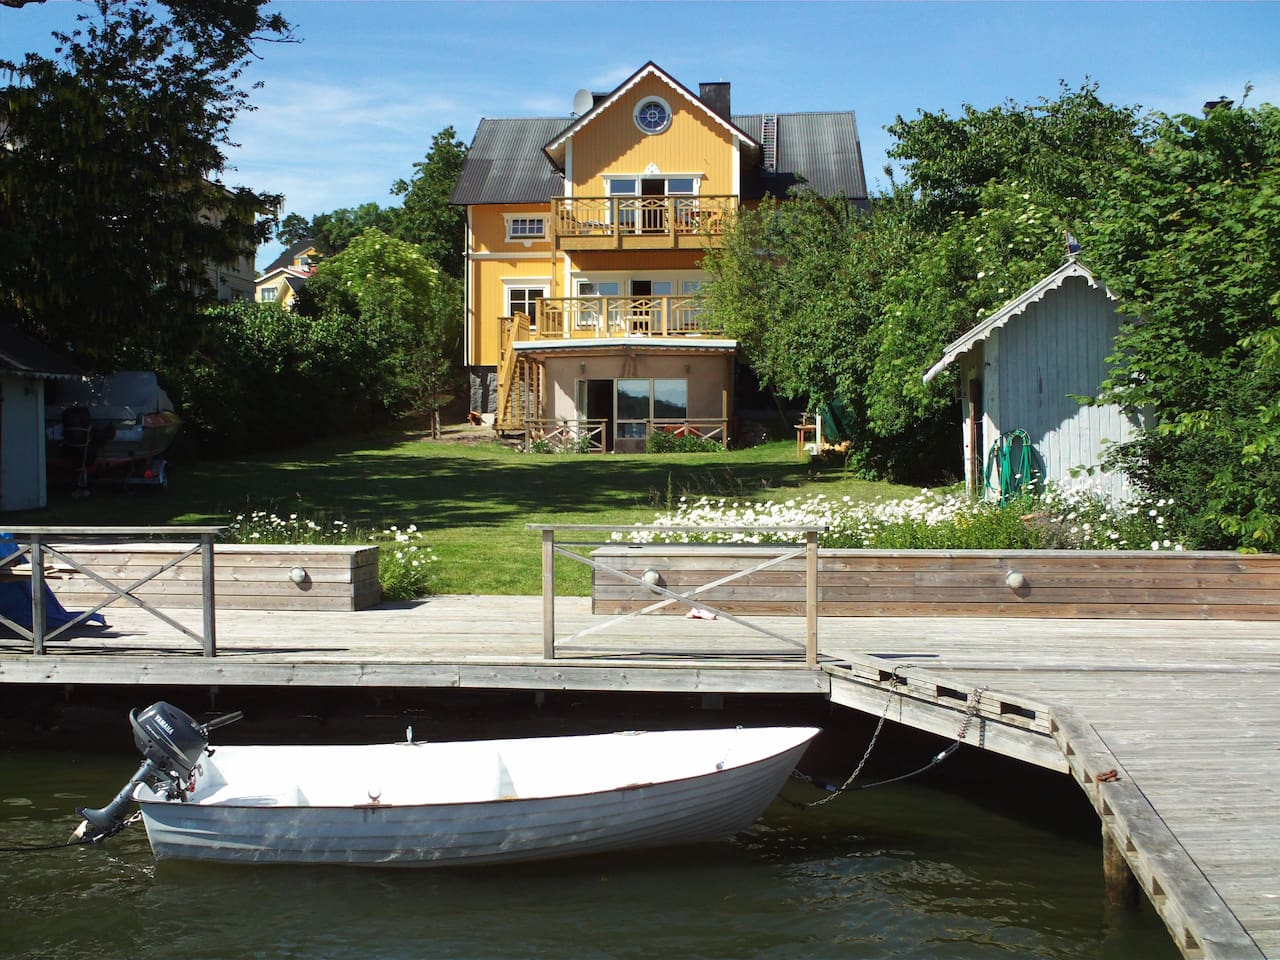 Waterfront villa, private pier, rowing boat with 6 hp motor and life jackets available